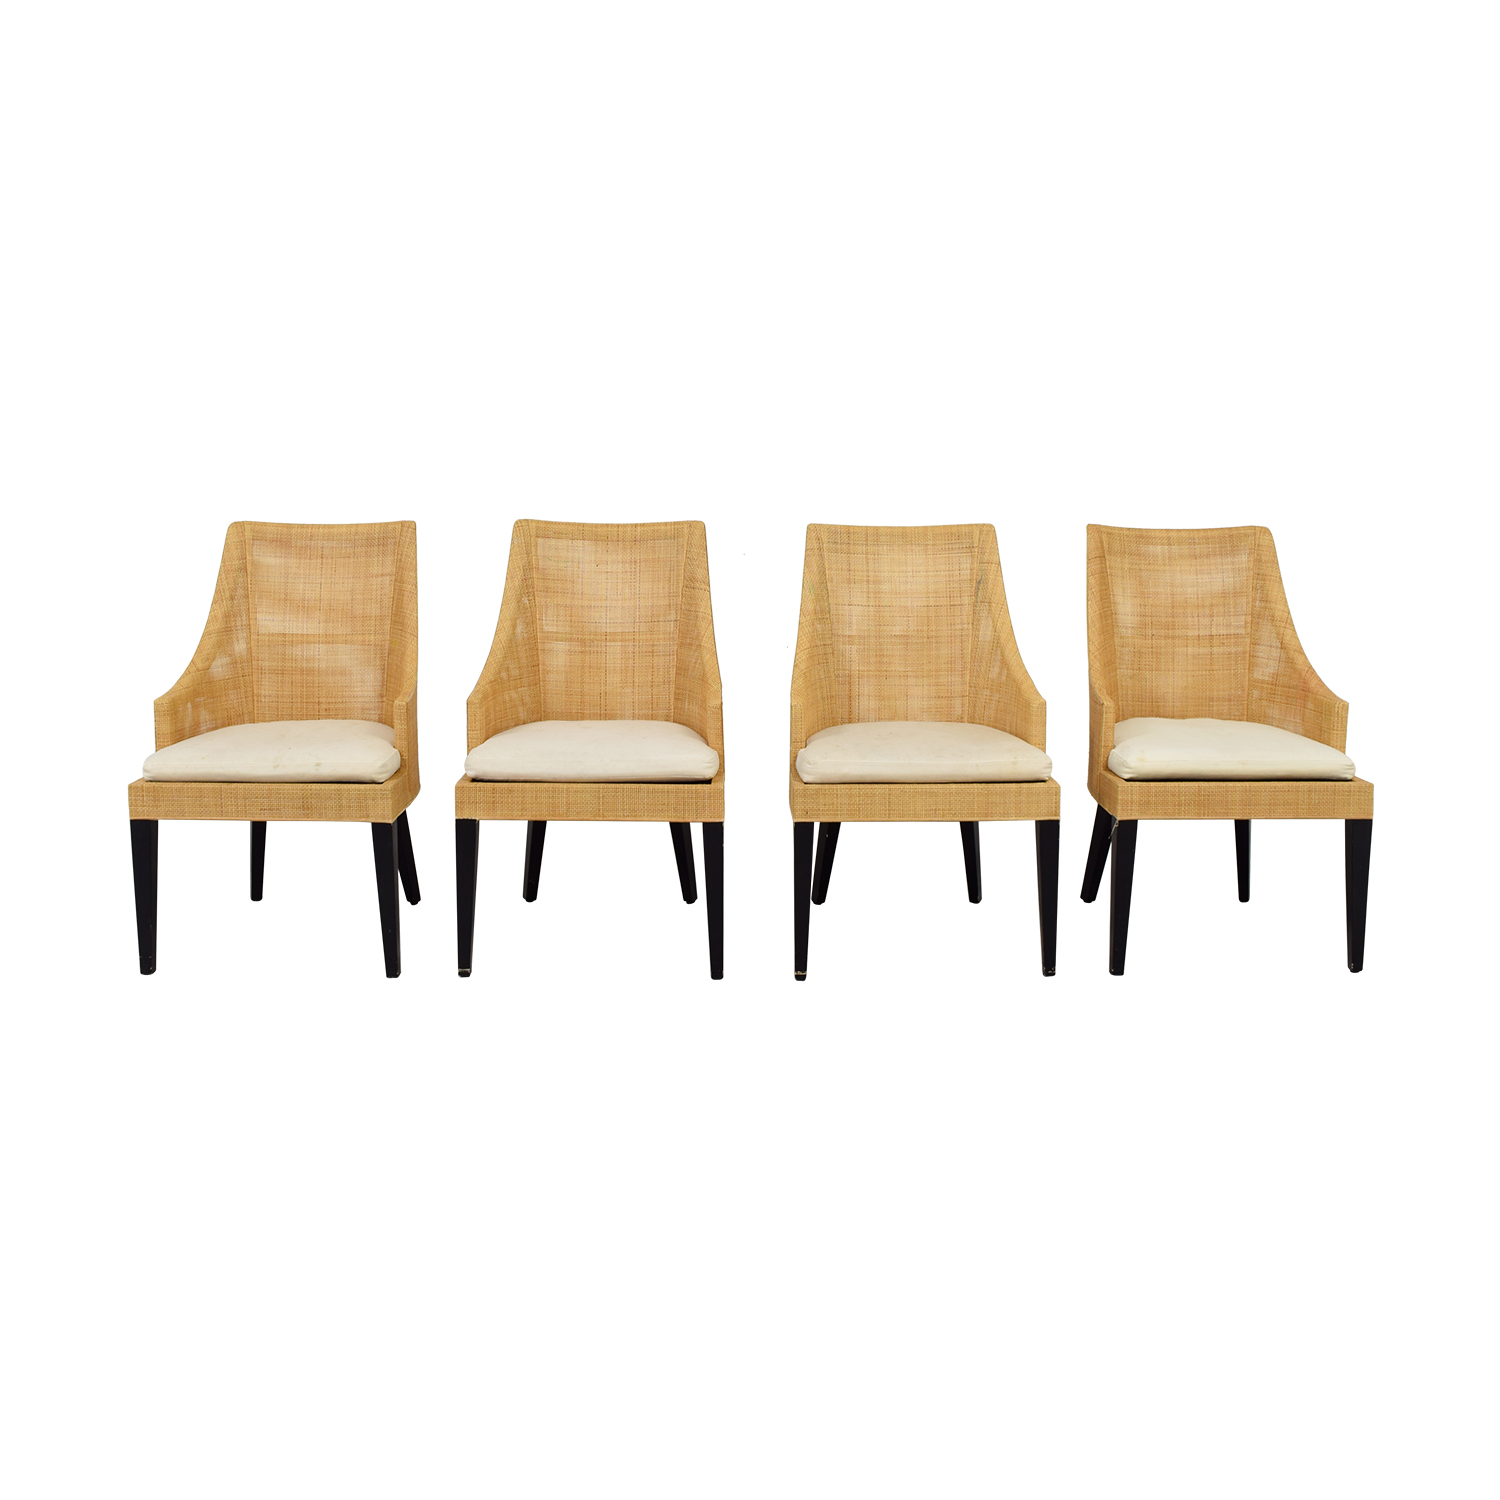 West Elm West Elm Beige and Tan Dining Chairs price